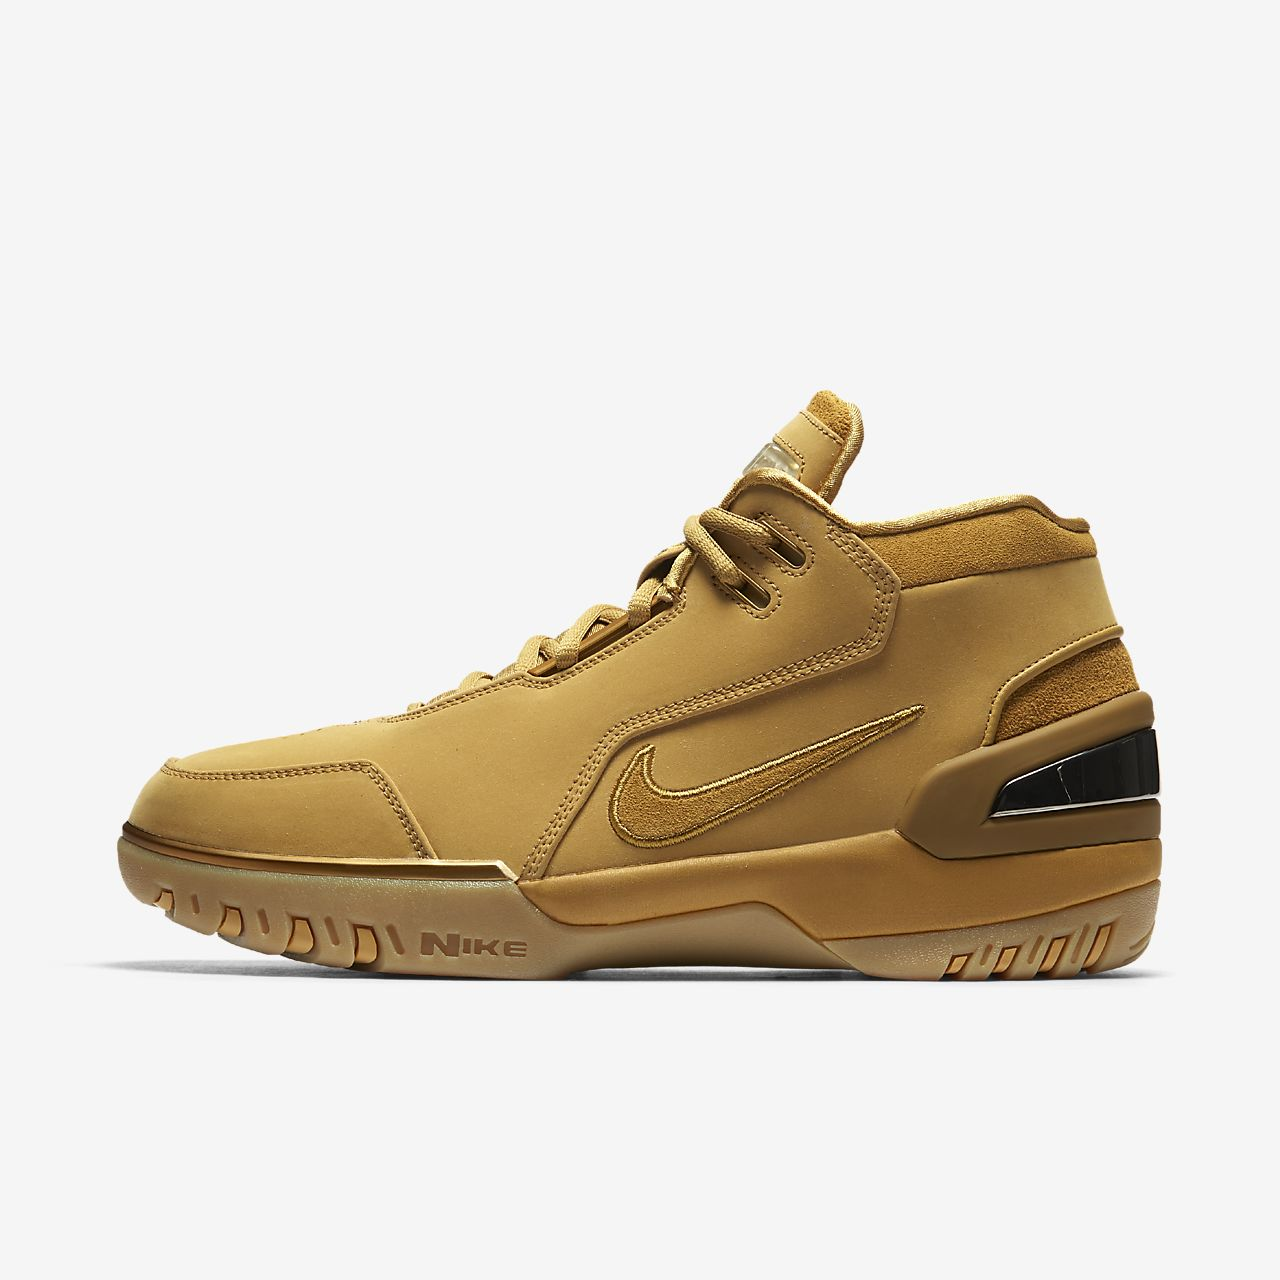 new arrivals 50115 d6f28 ... Nike Air Zoom Generation QS sko til herre